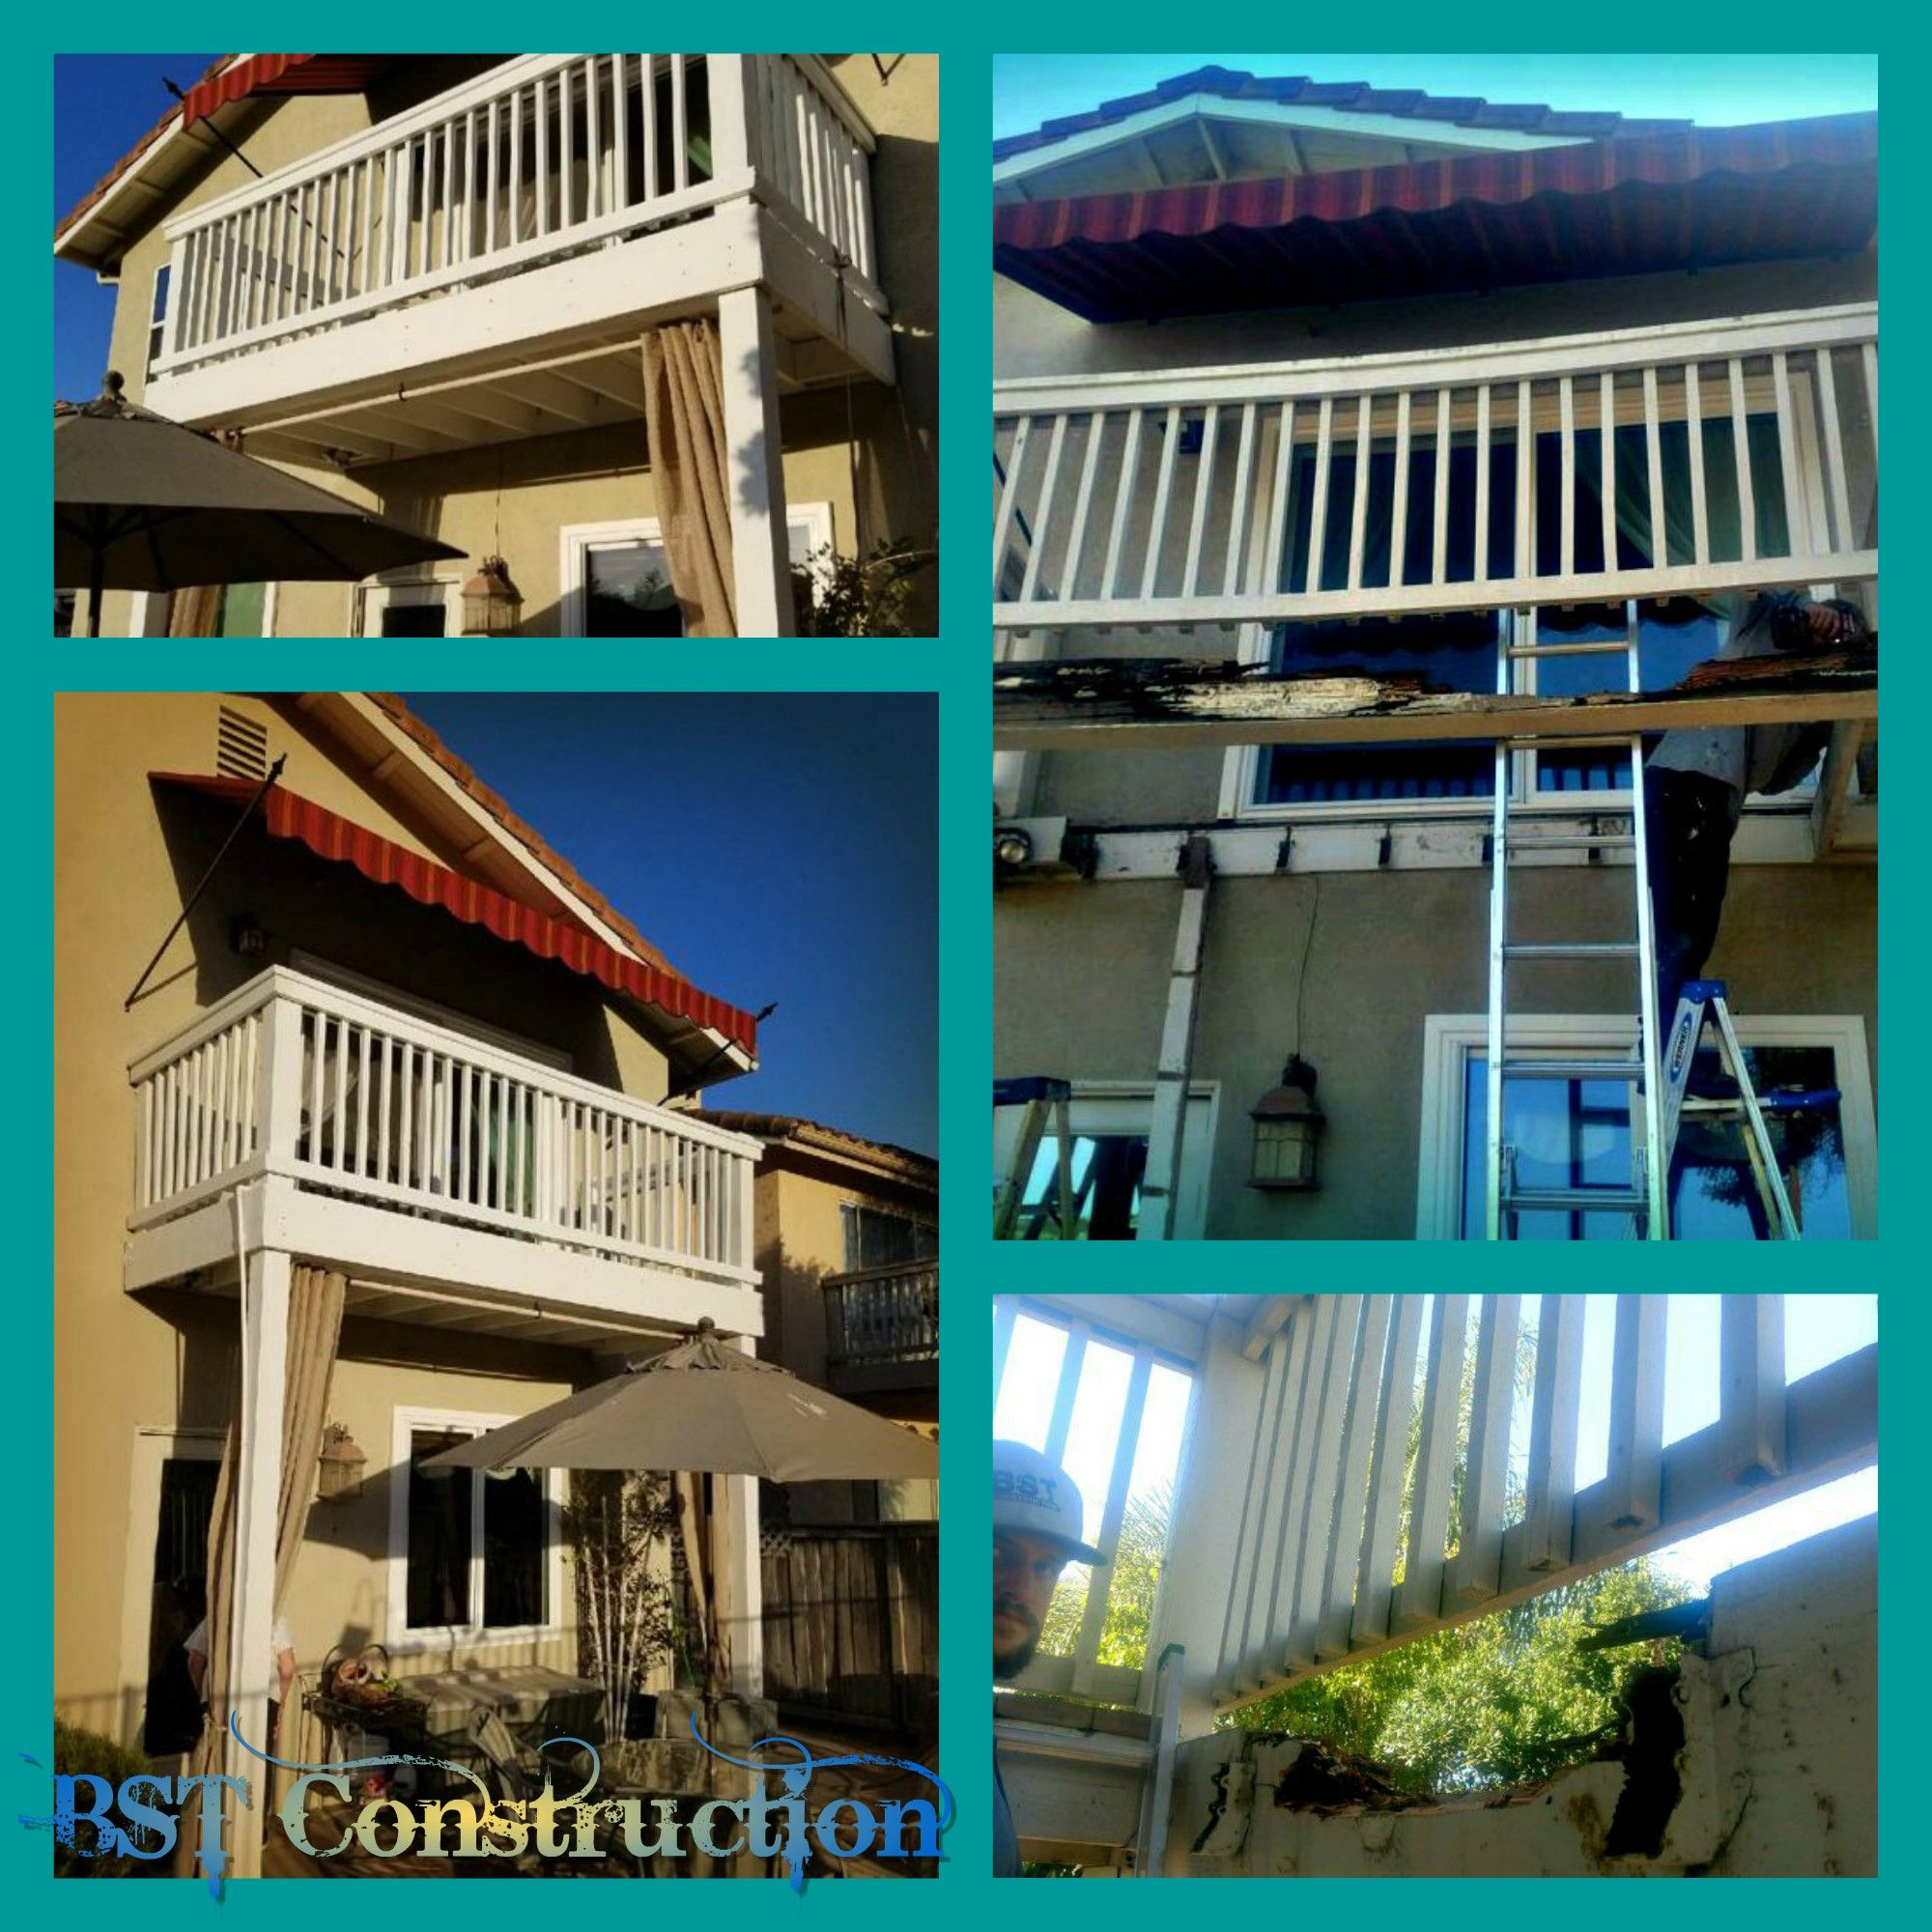 Balcony Rebuild To Replace Wood Rotted Beams And Floor Planking